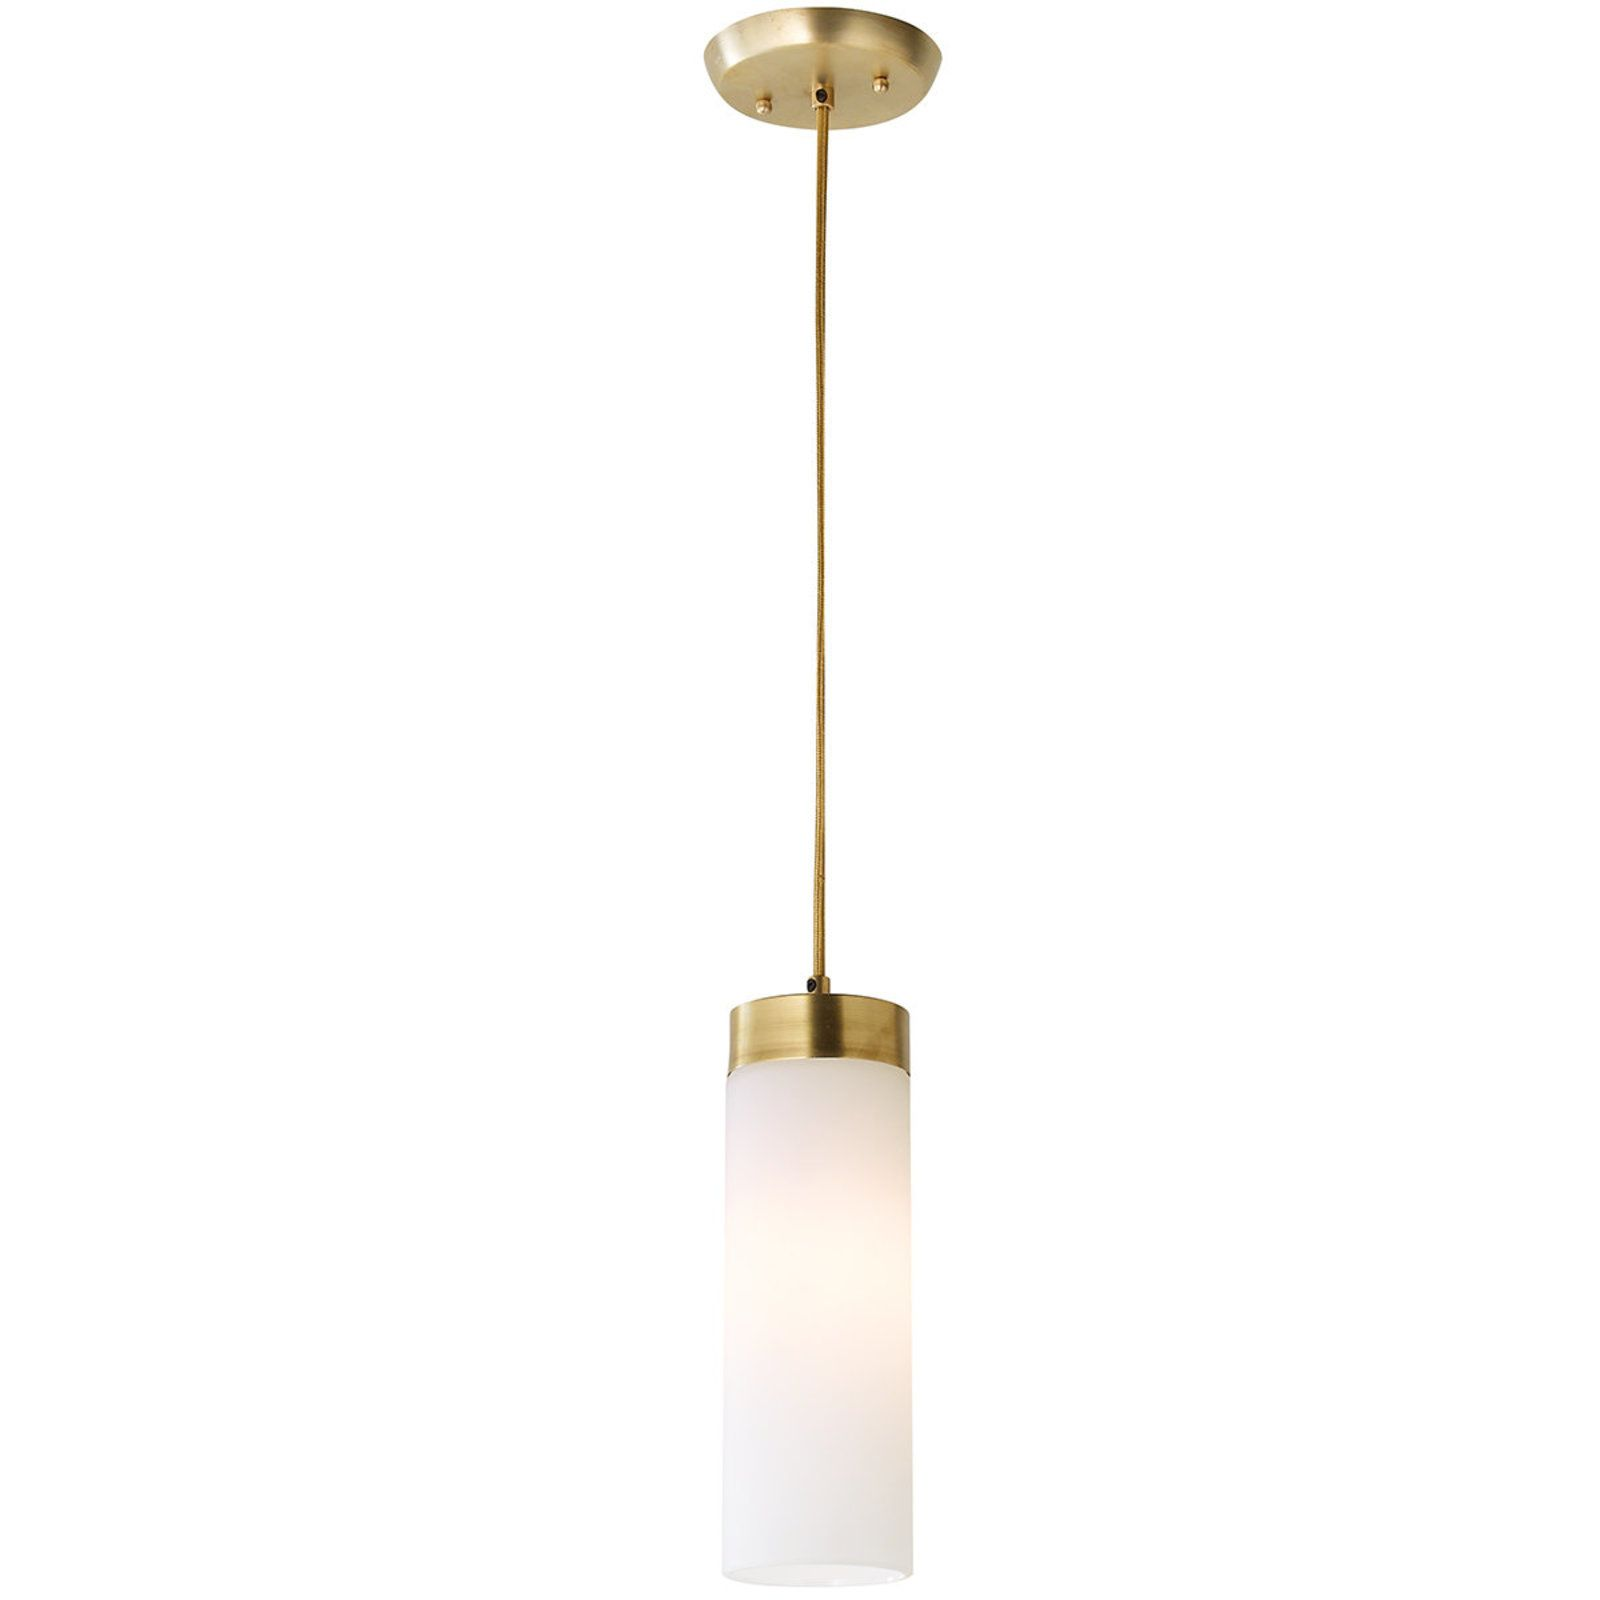 cloth product light glass cord designer finish black amber cylinder en ariana pendant matte